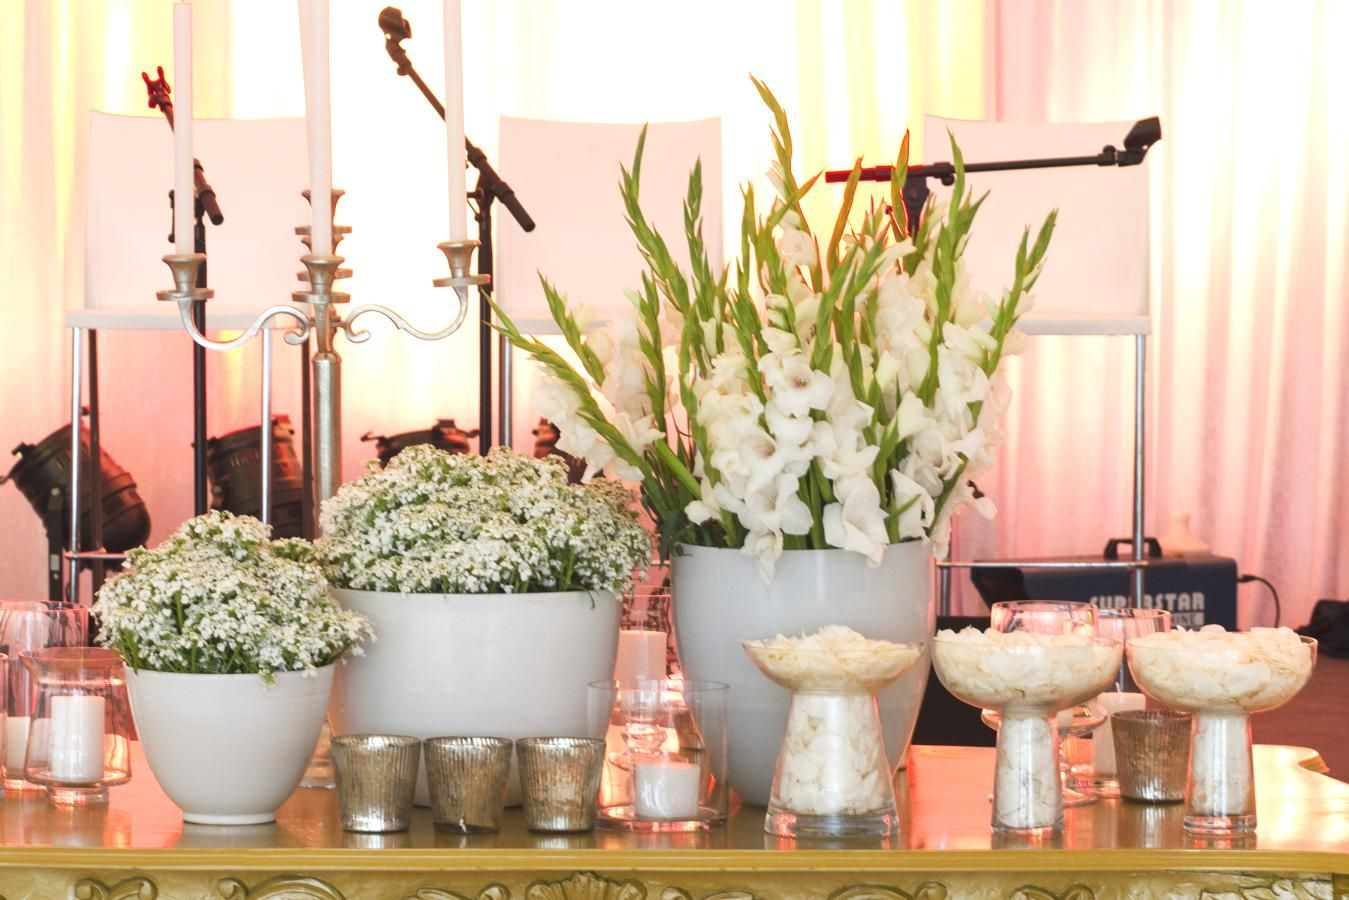 Decor inspiration for a corporate event